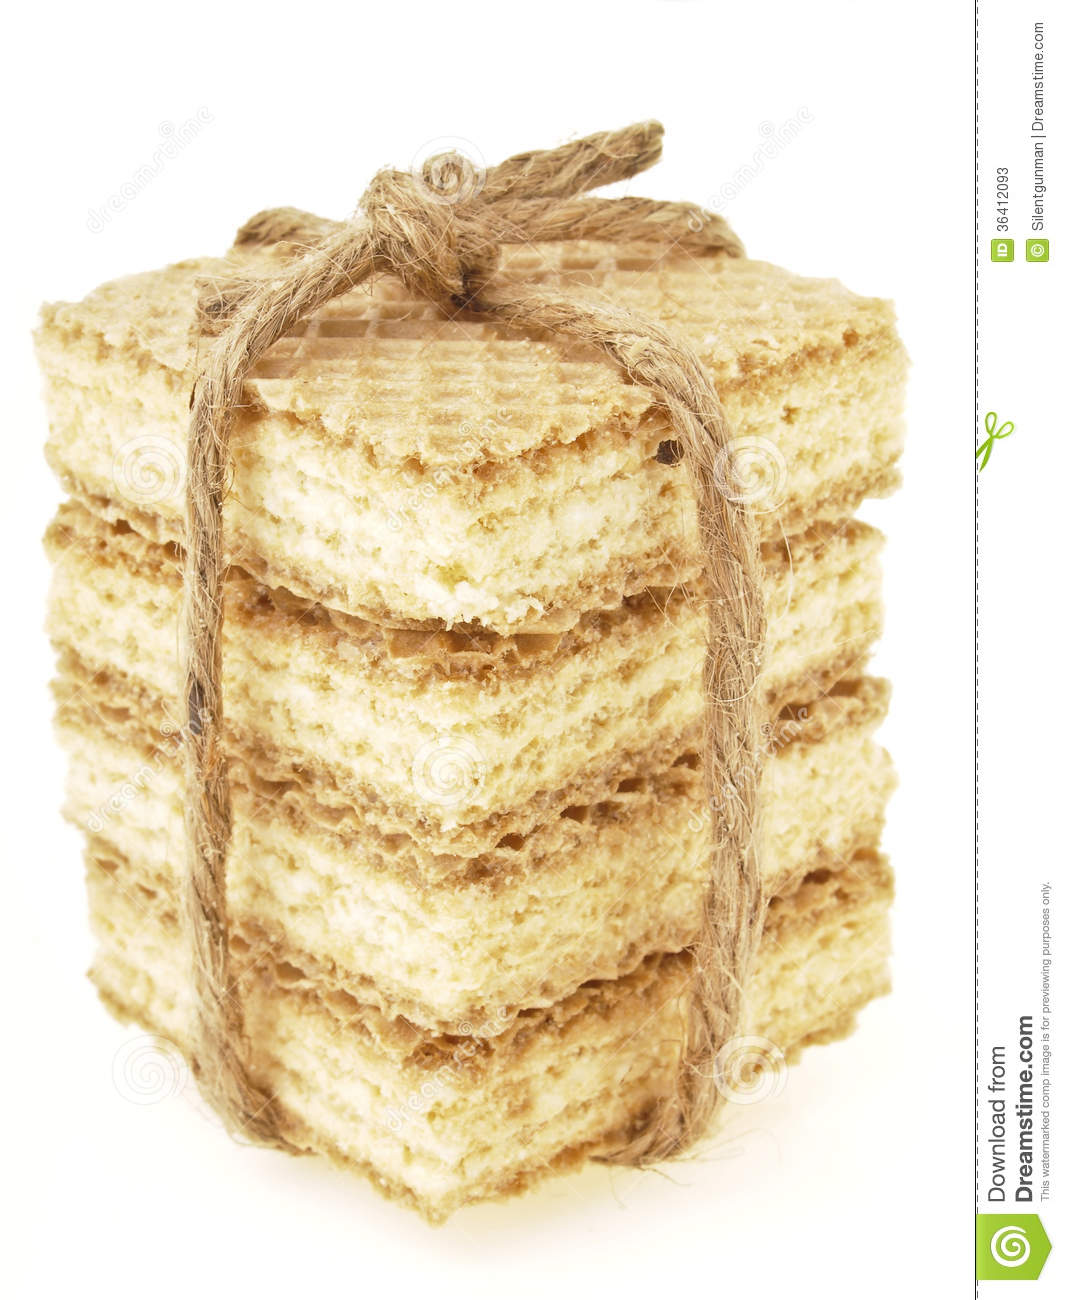 Wafer packing